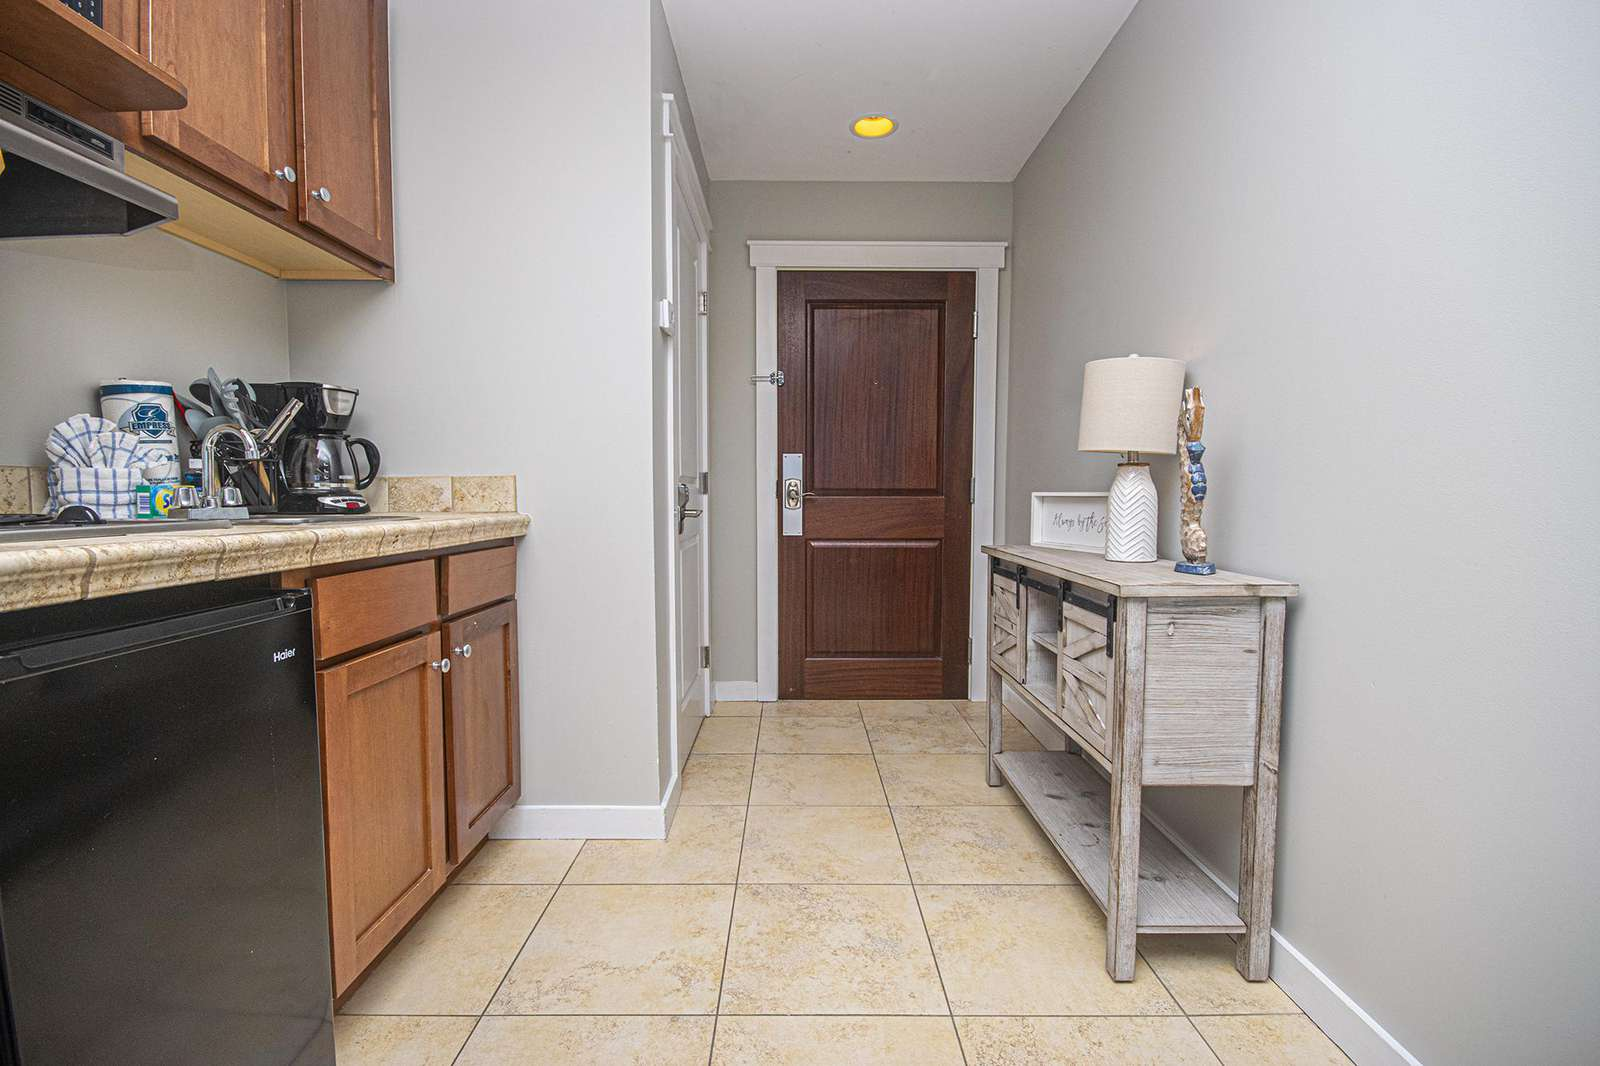 This private spacious studio is clean and stocked!